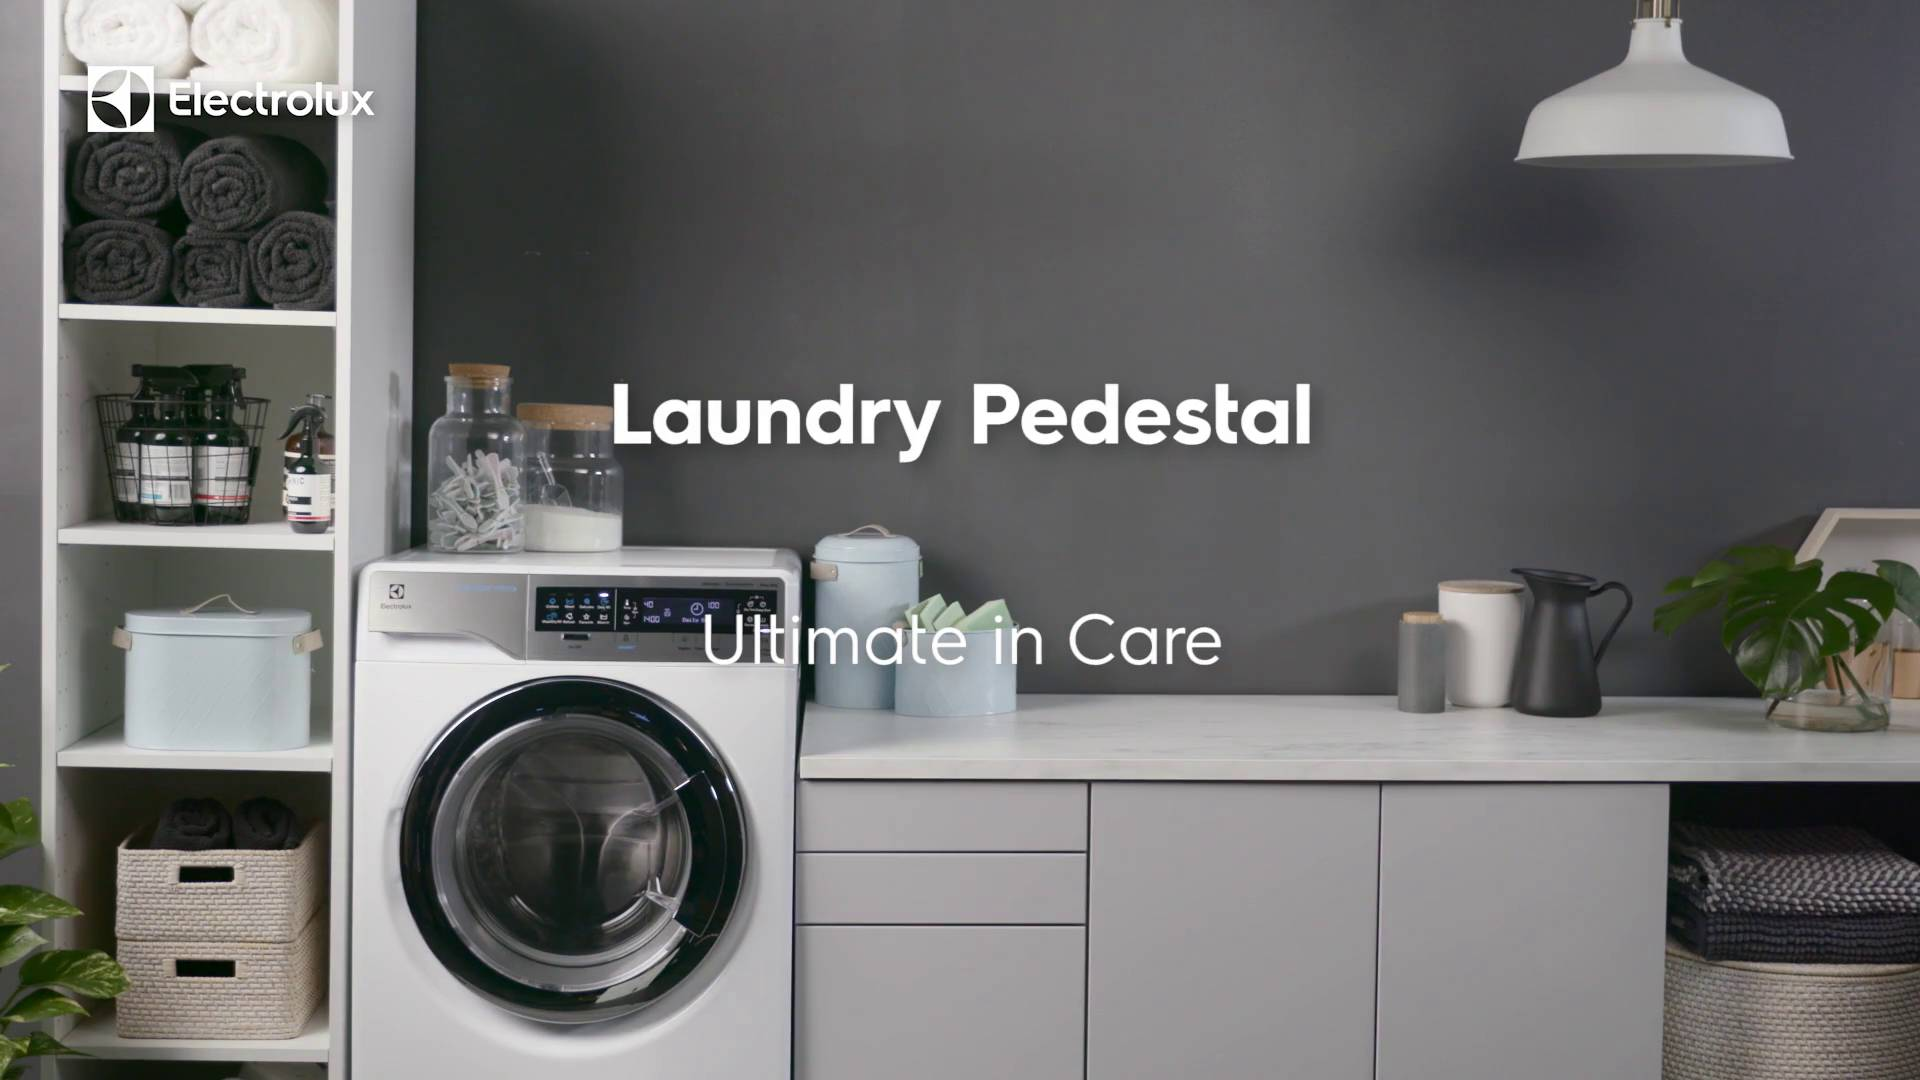 site sales most graphite electrolux dryer pacific steel dryers for pedestal laundry washer sd lg category and washers pedestals